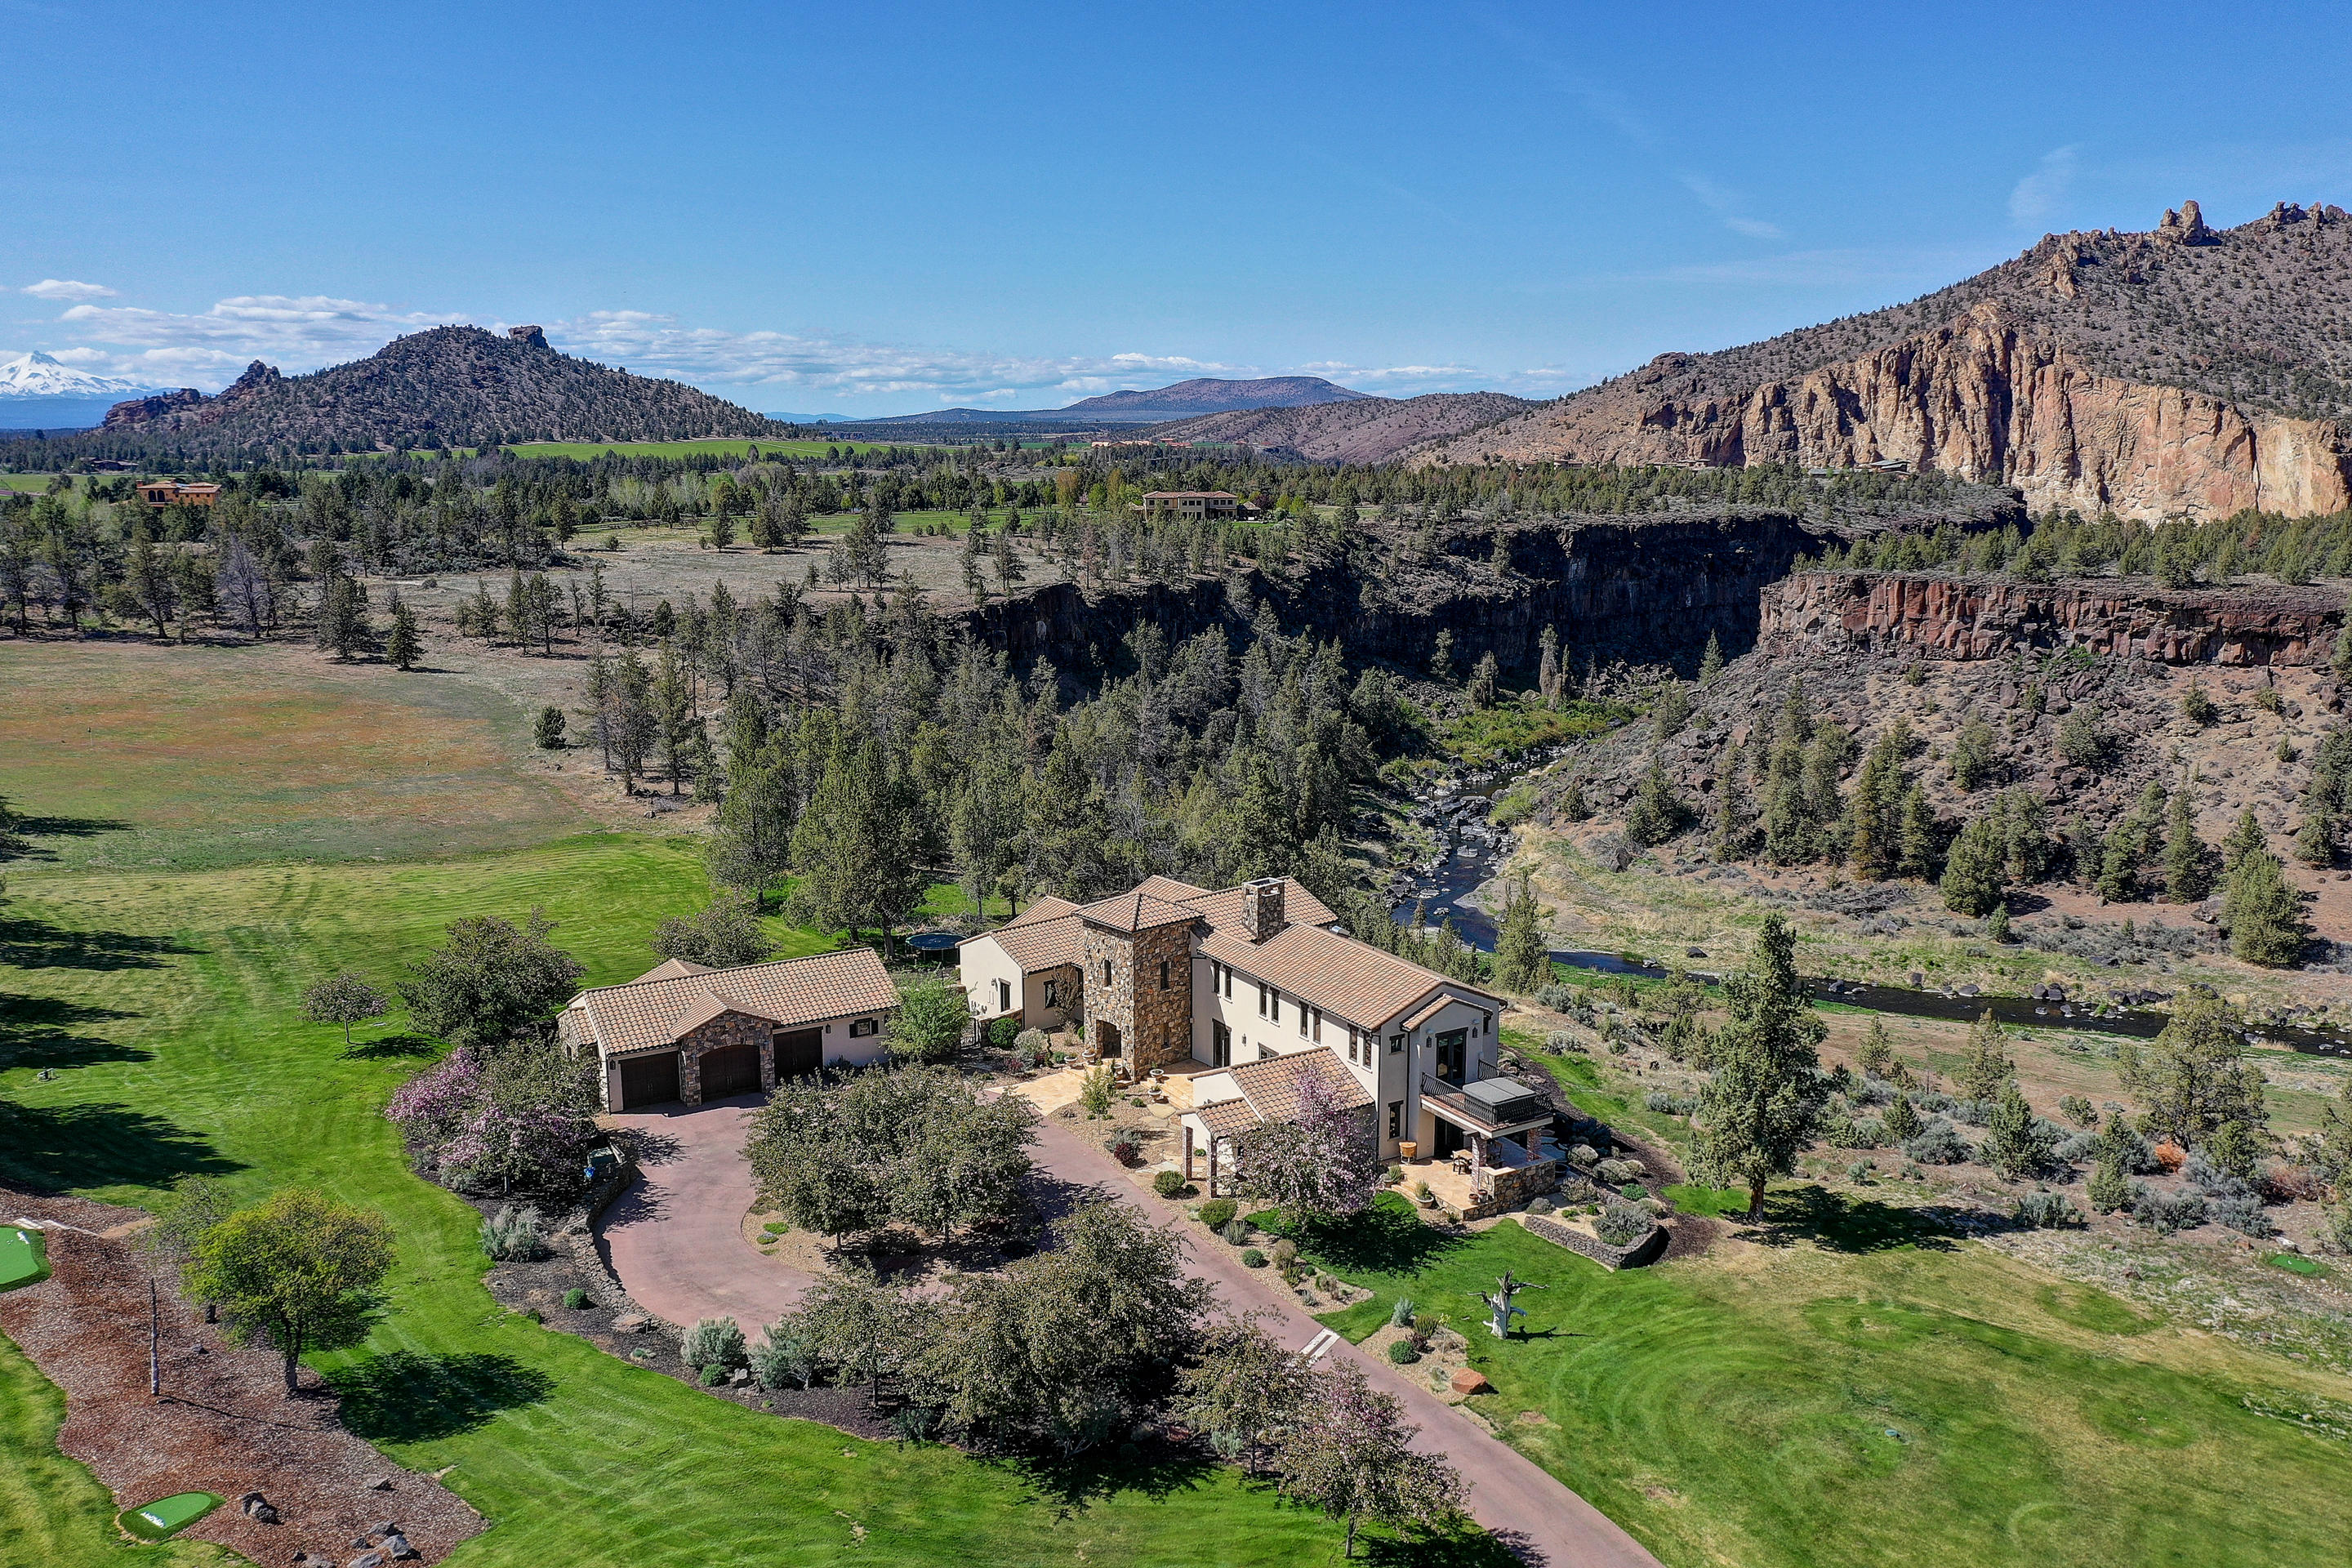 Surround yourself in complete tranquility and luxury on almost 14 acres enveloped by Smith Rock, the Crooked River and the majestic Red Rock Canyon. Theprestigious estate is superior in its phenomenal river views and ultimate privacy. The property has been masterfully refined to become one of the most exquisitehomes in Central Oregon. Boasting a stunning grand entrance and sophisticated finishes with a floorplan that is formal yet creates a comfortable invitingambiance. Other luxury amenities include venetian plaster walls, stone accents ,knotty alder trim, hard wood floors and live edge granite. The towering fireplacemakes a commanding statement from the inside and exterior patio. Multiple family rooms, office, hot tub and putting greens by Back Nine Greens. Your ownpersonal retreat. Also enjoy the outdoor lifestyle the Ranch offers like 1700 acres of meadow, vienyards, river canyon, ponds, hiking/biking trails, clubhouse,pool and tennis courts, equestrian facility and more